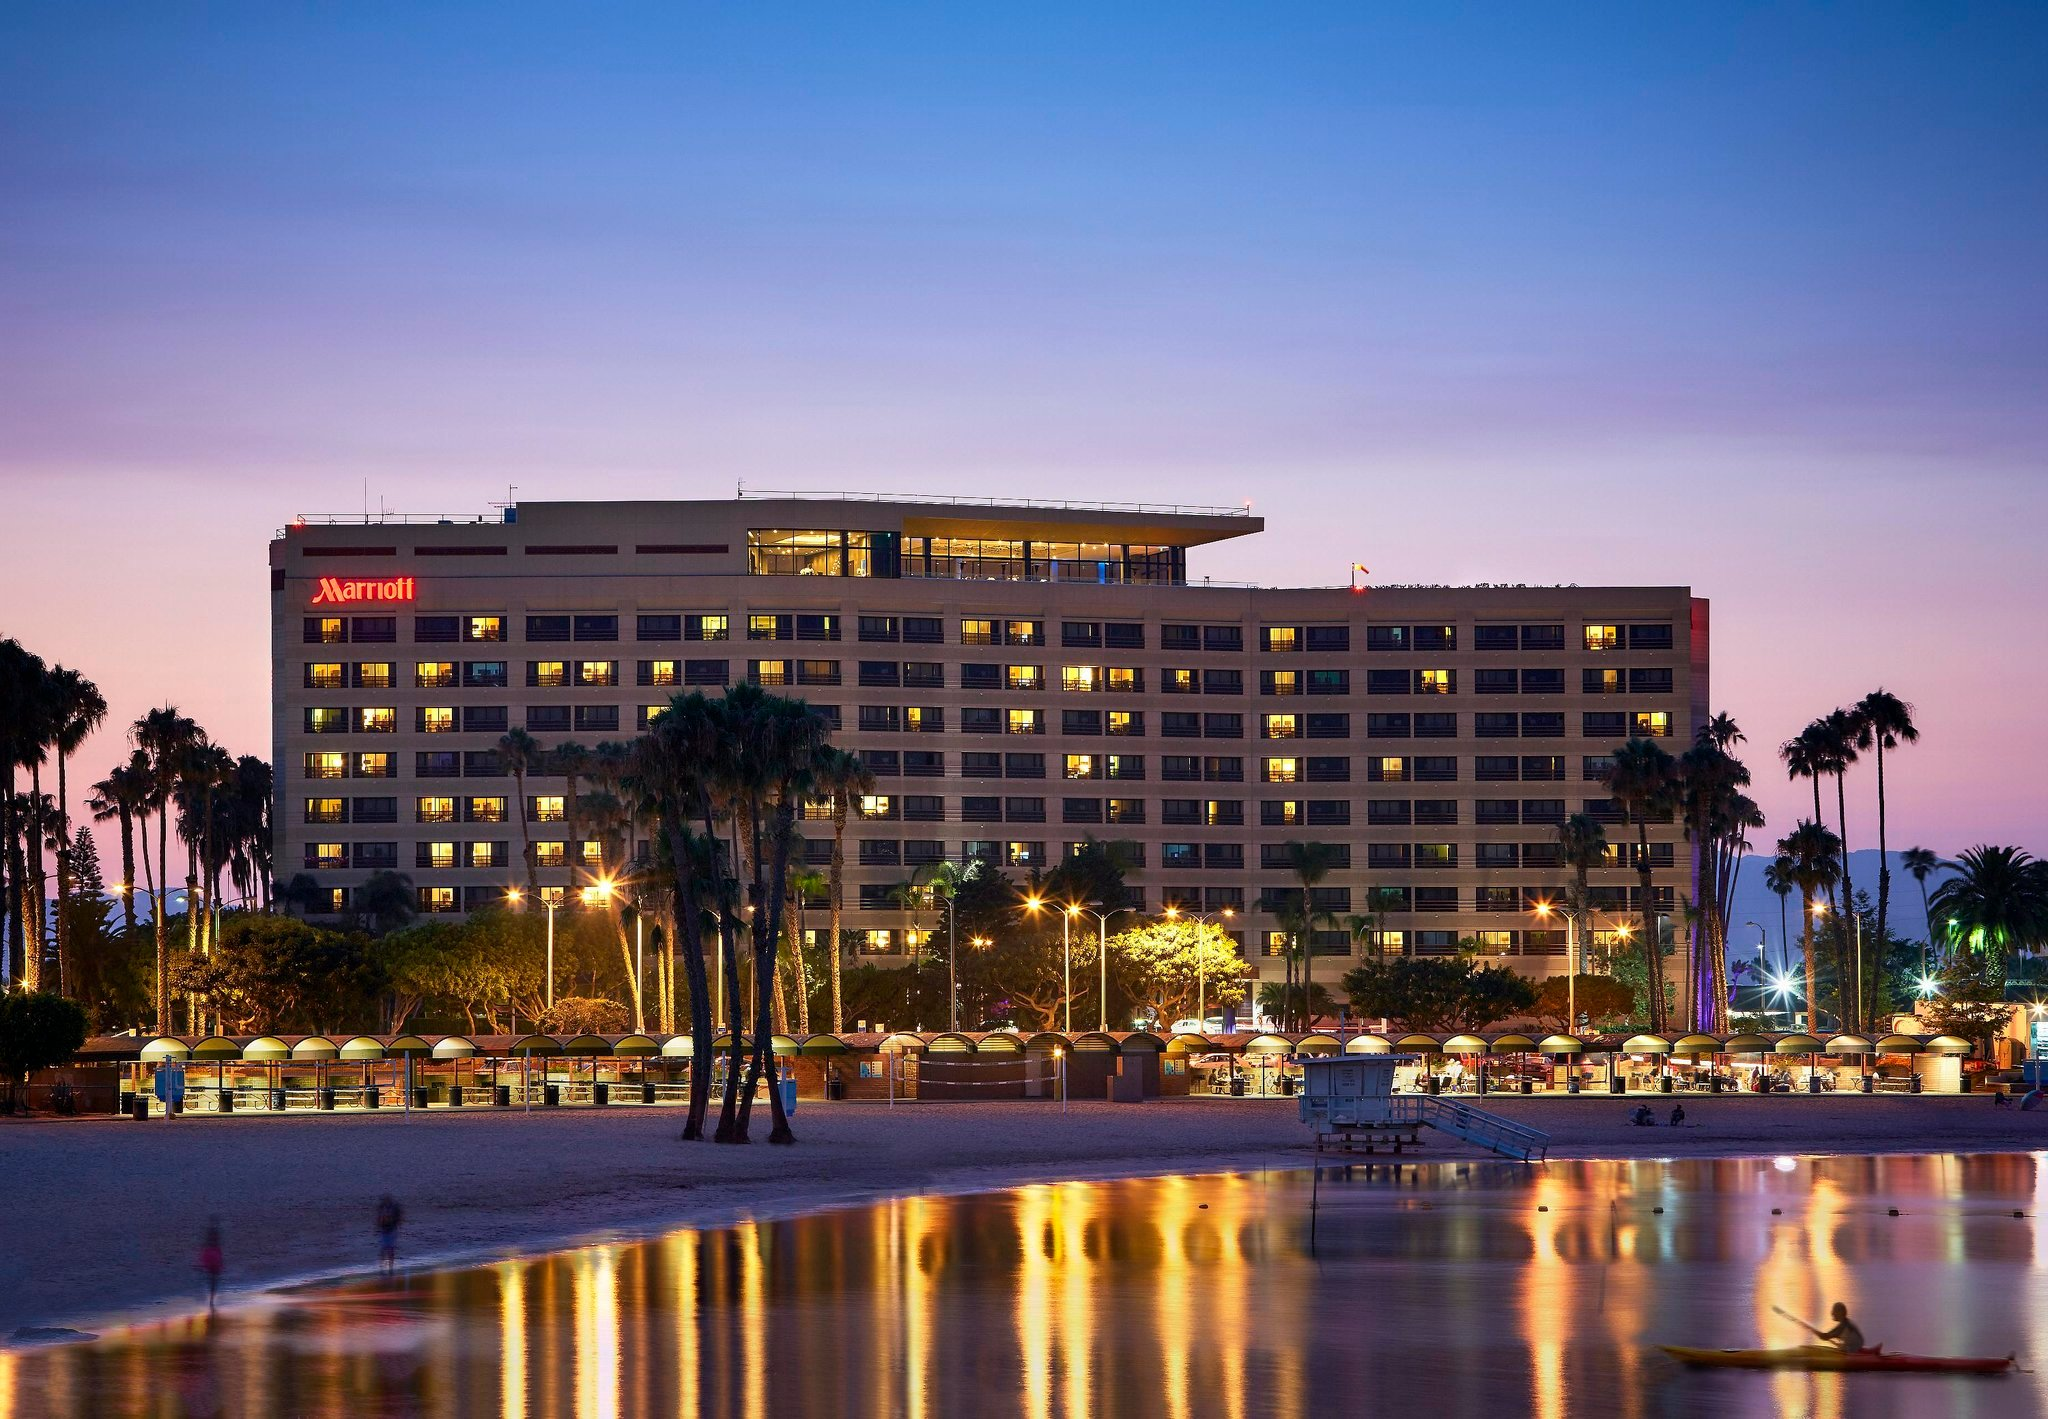 Marina del Rey Marriott